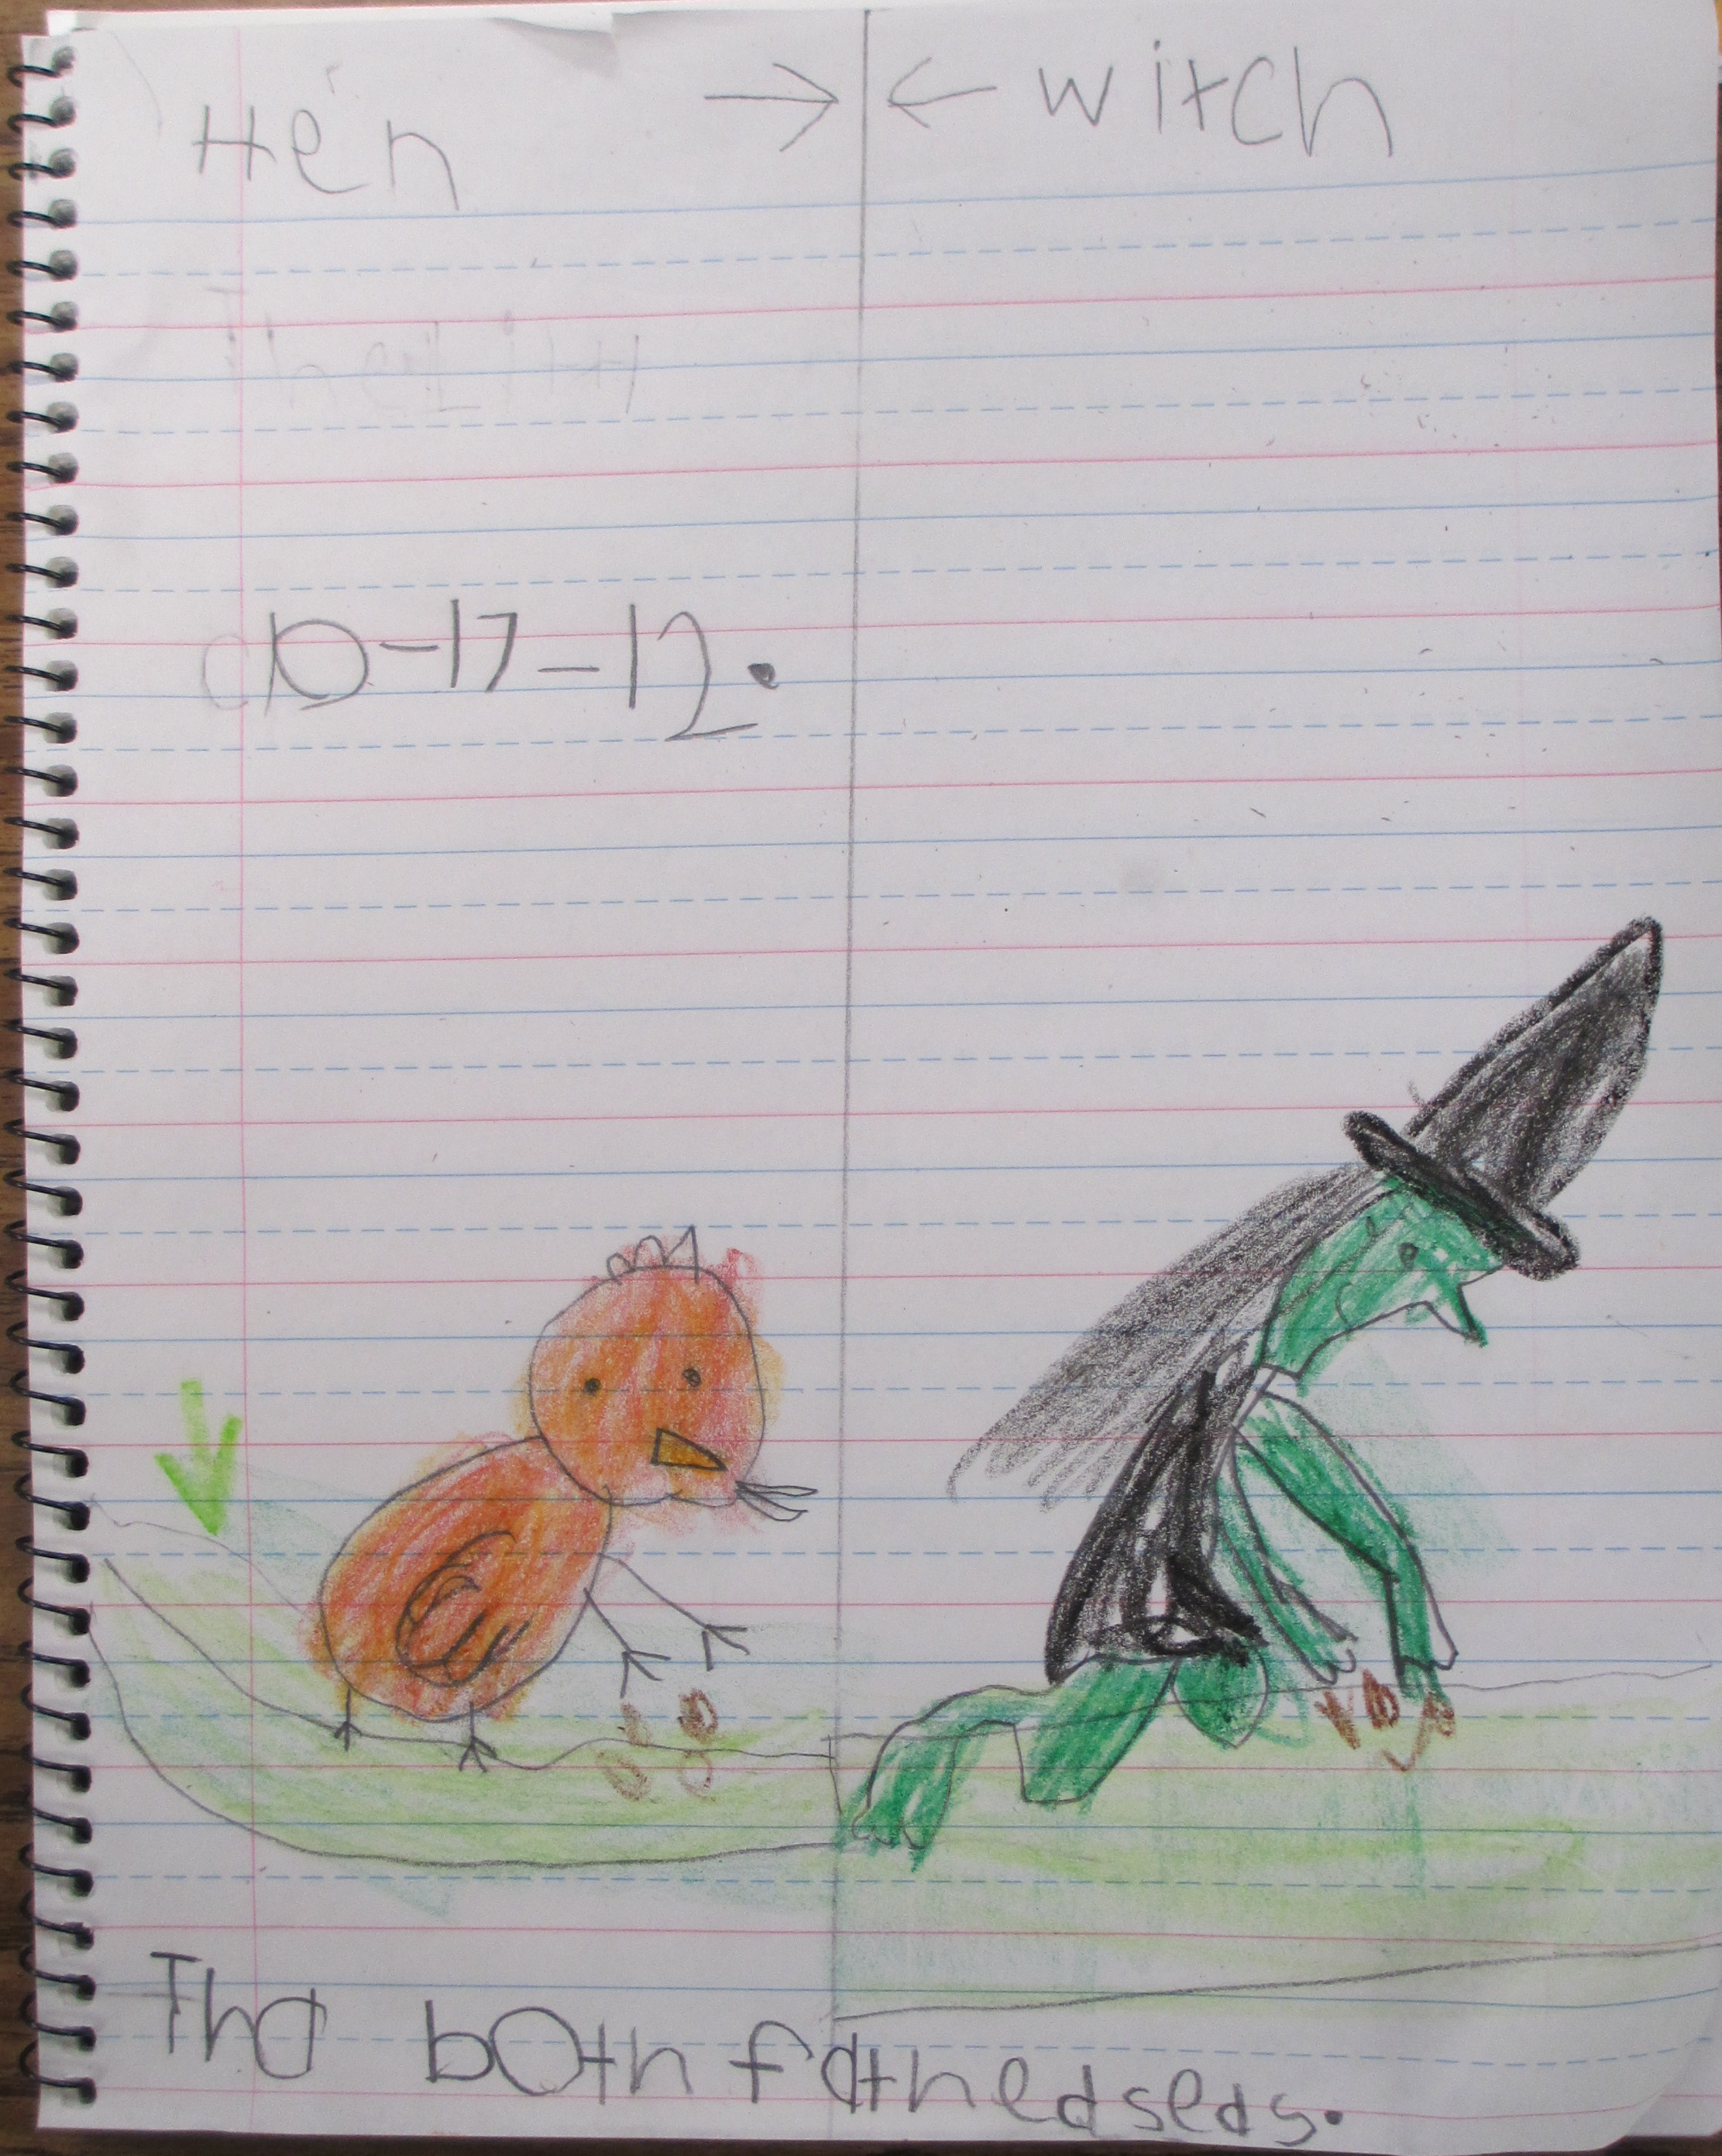 Student Notebook on Hen and Witch